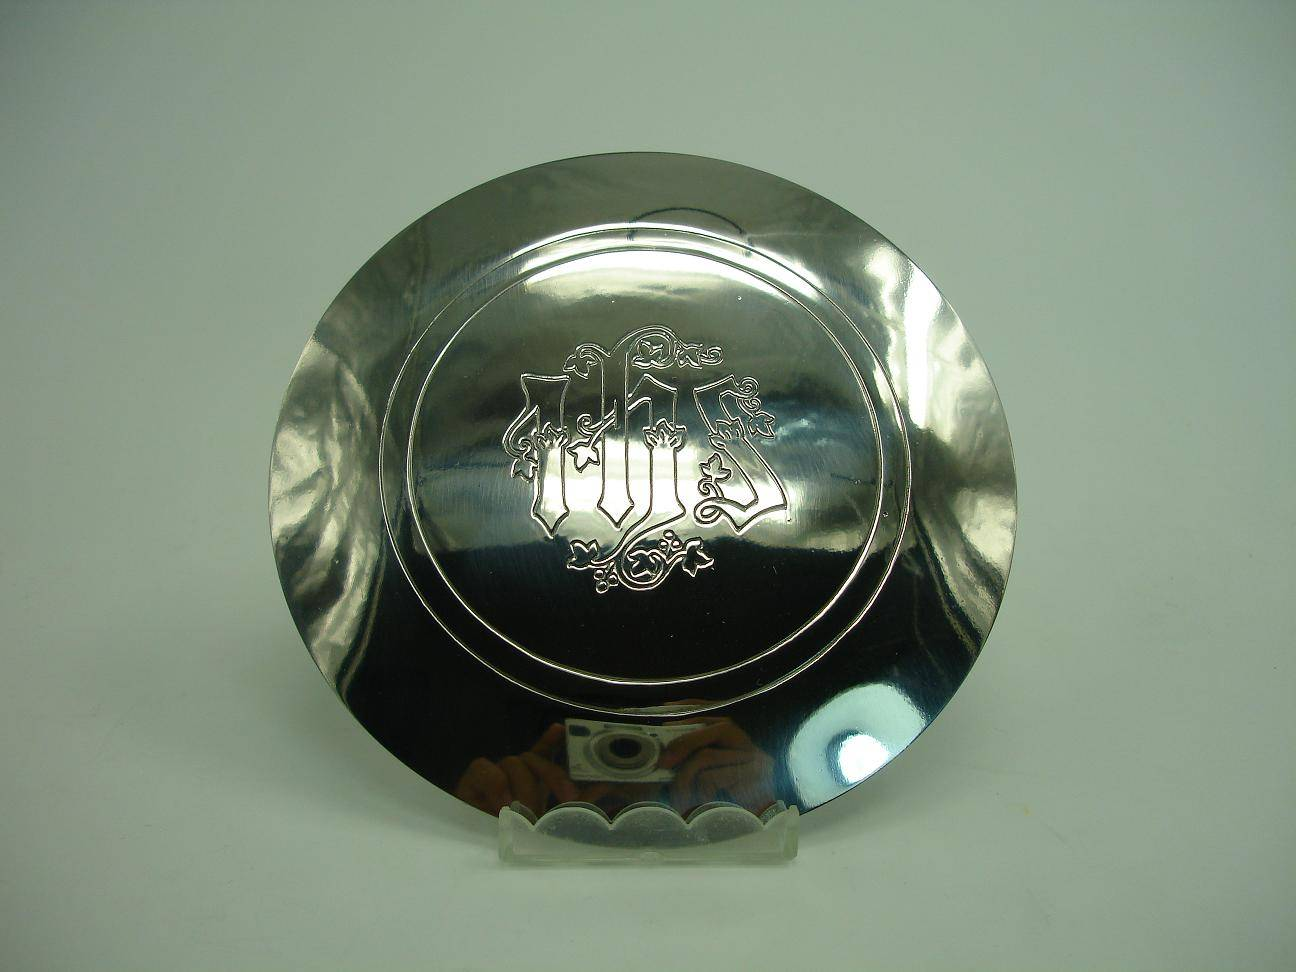 High Quality Stainless Steel Paten Excellent Patina Religious Articles P16-2